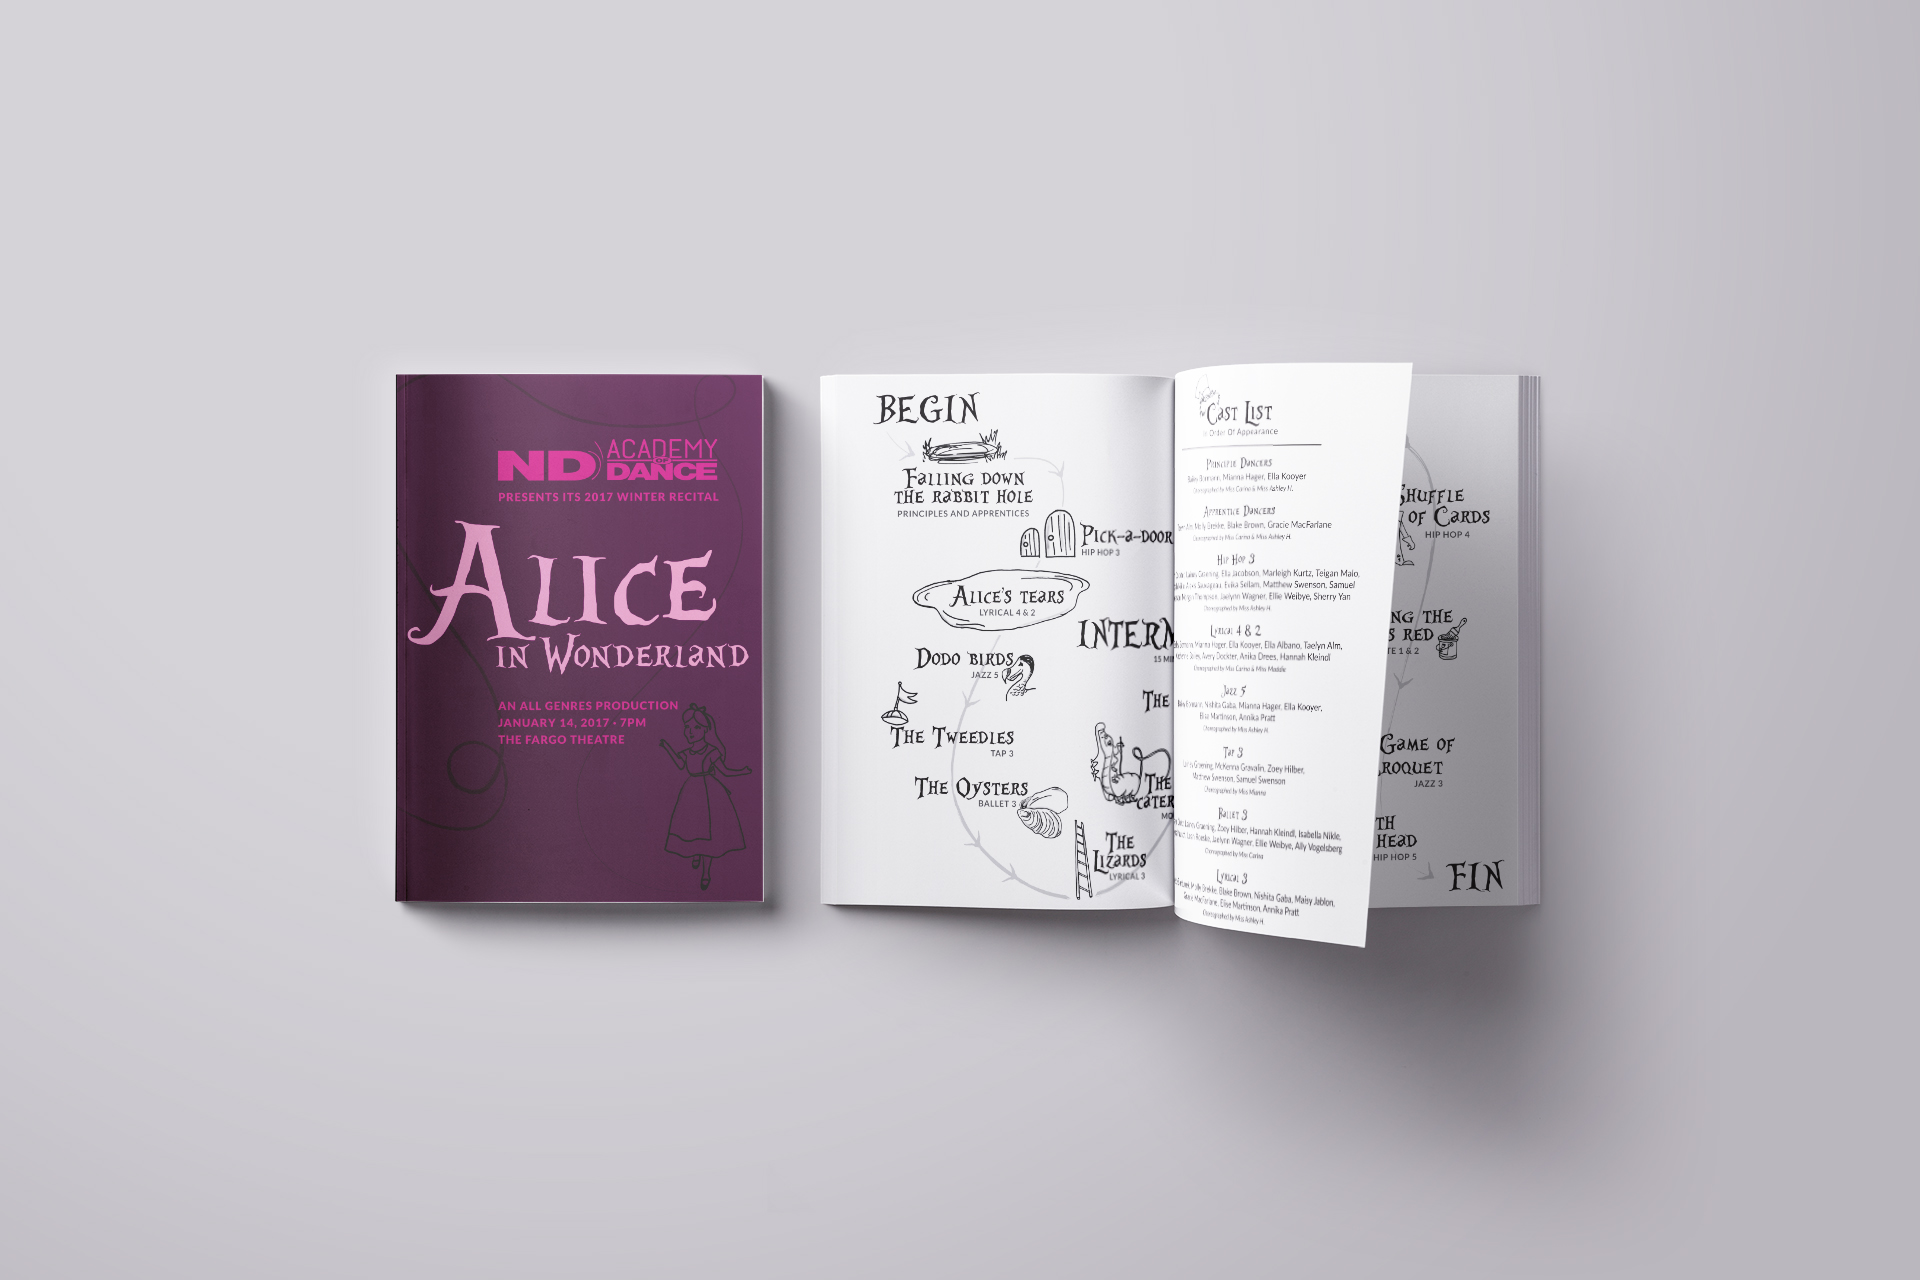 Closed, printed program next to open program on a light gray background